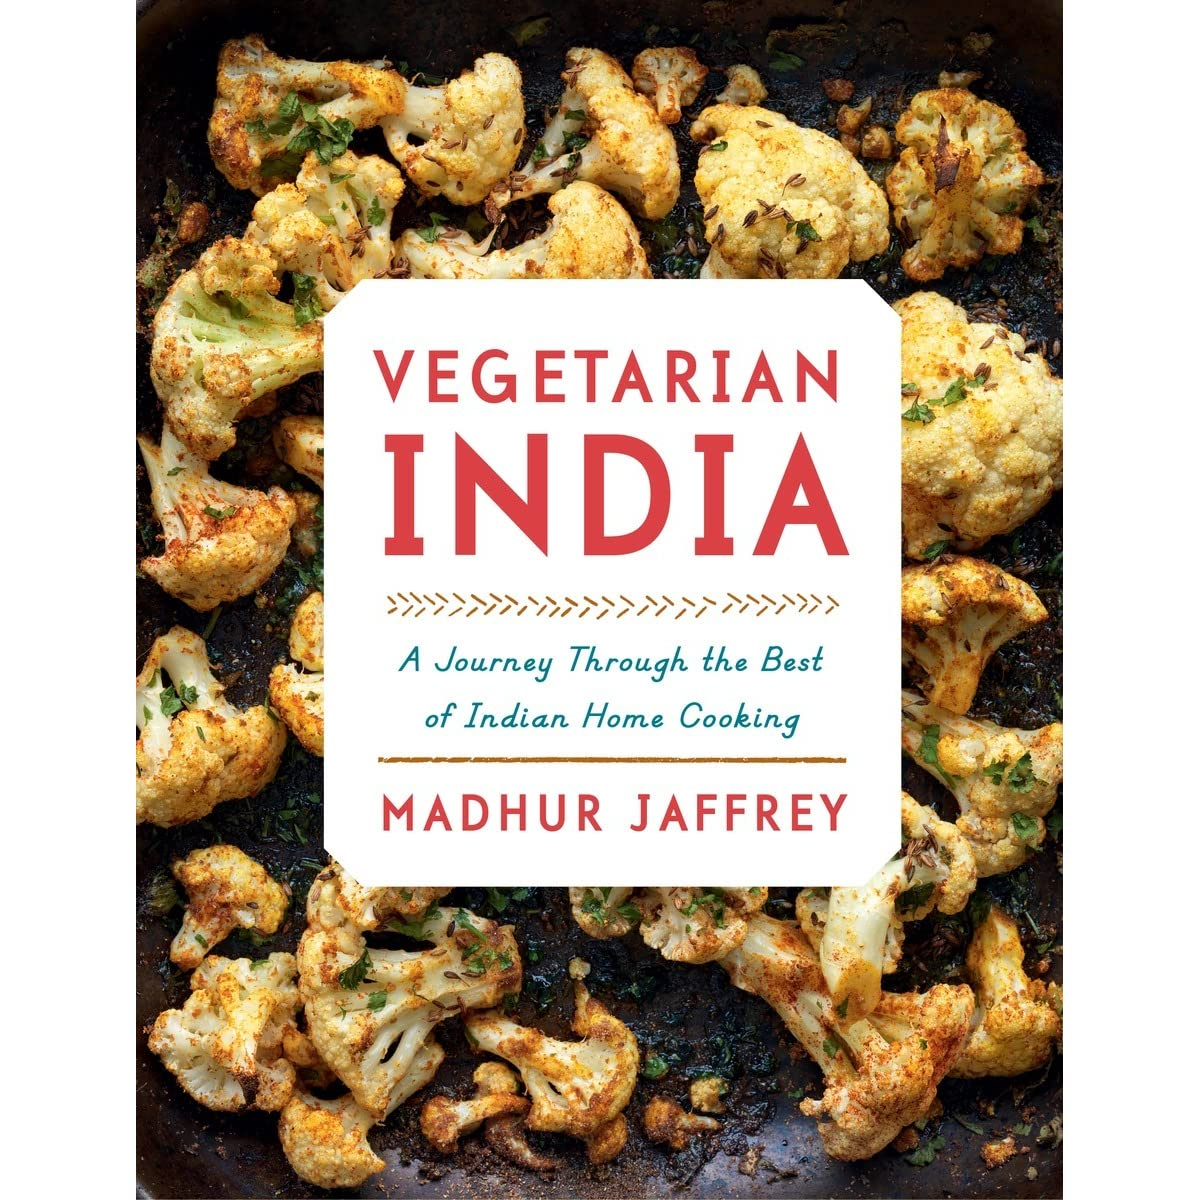 Vegetarian india a journey through the best of indian home vegetarian india a journey through the best of indian home cooking by madhur jaffrey fandeluxe Document